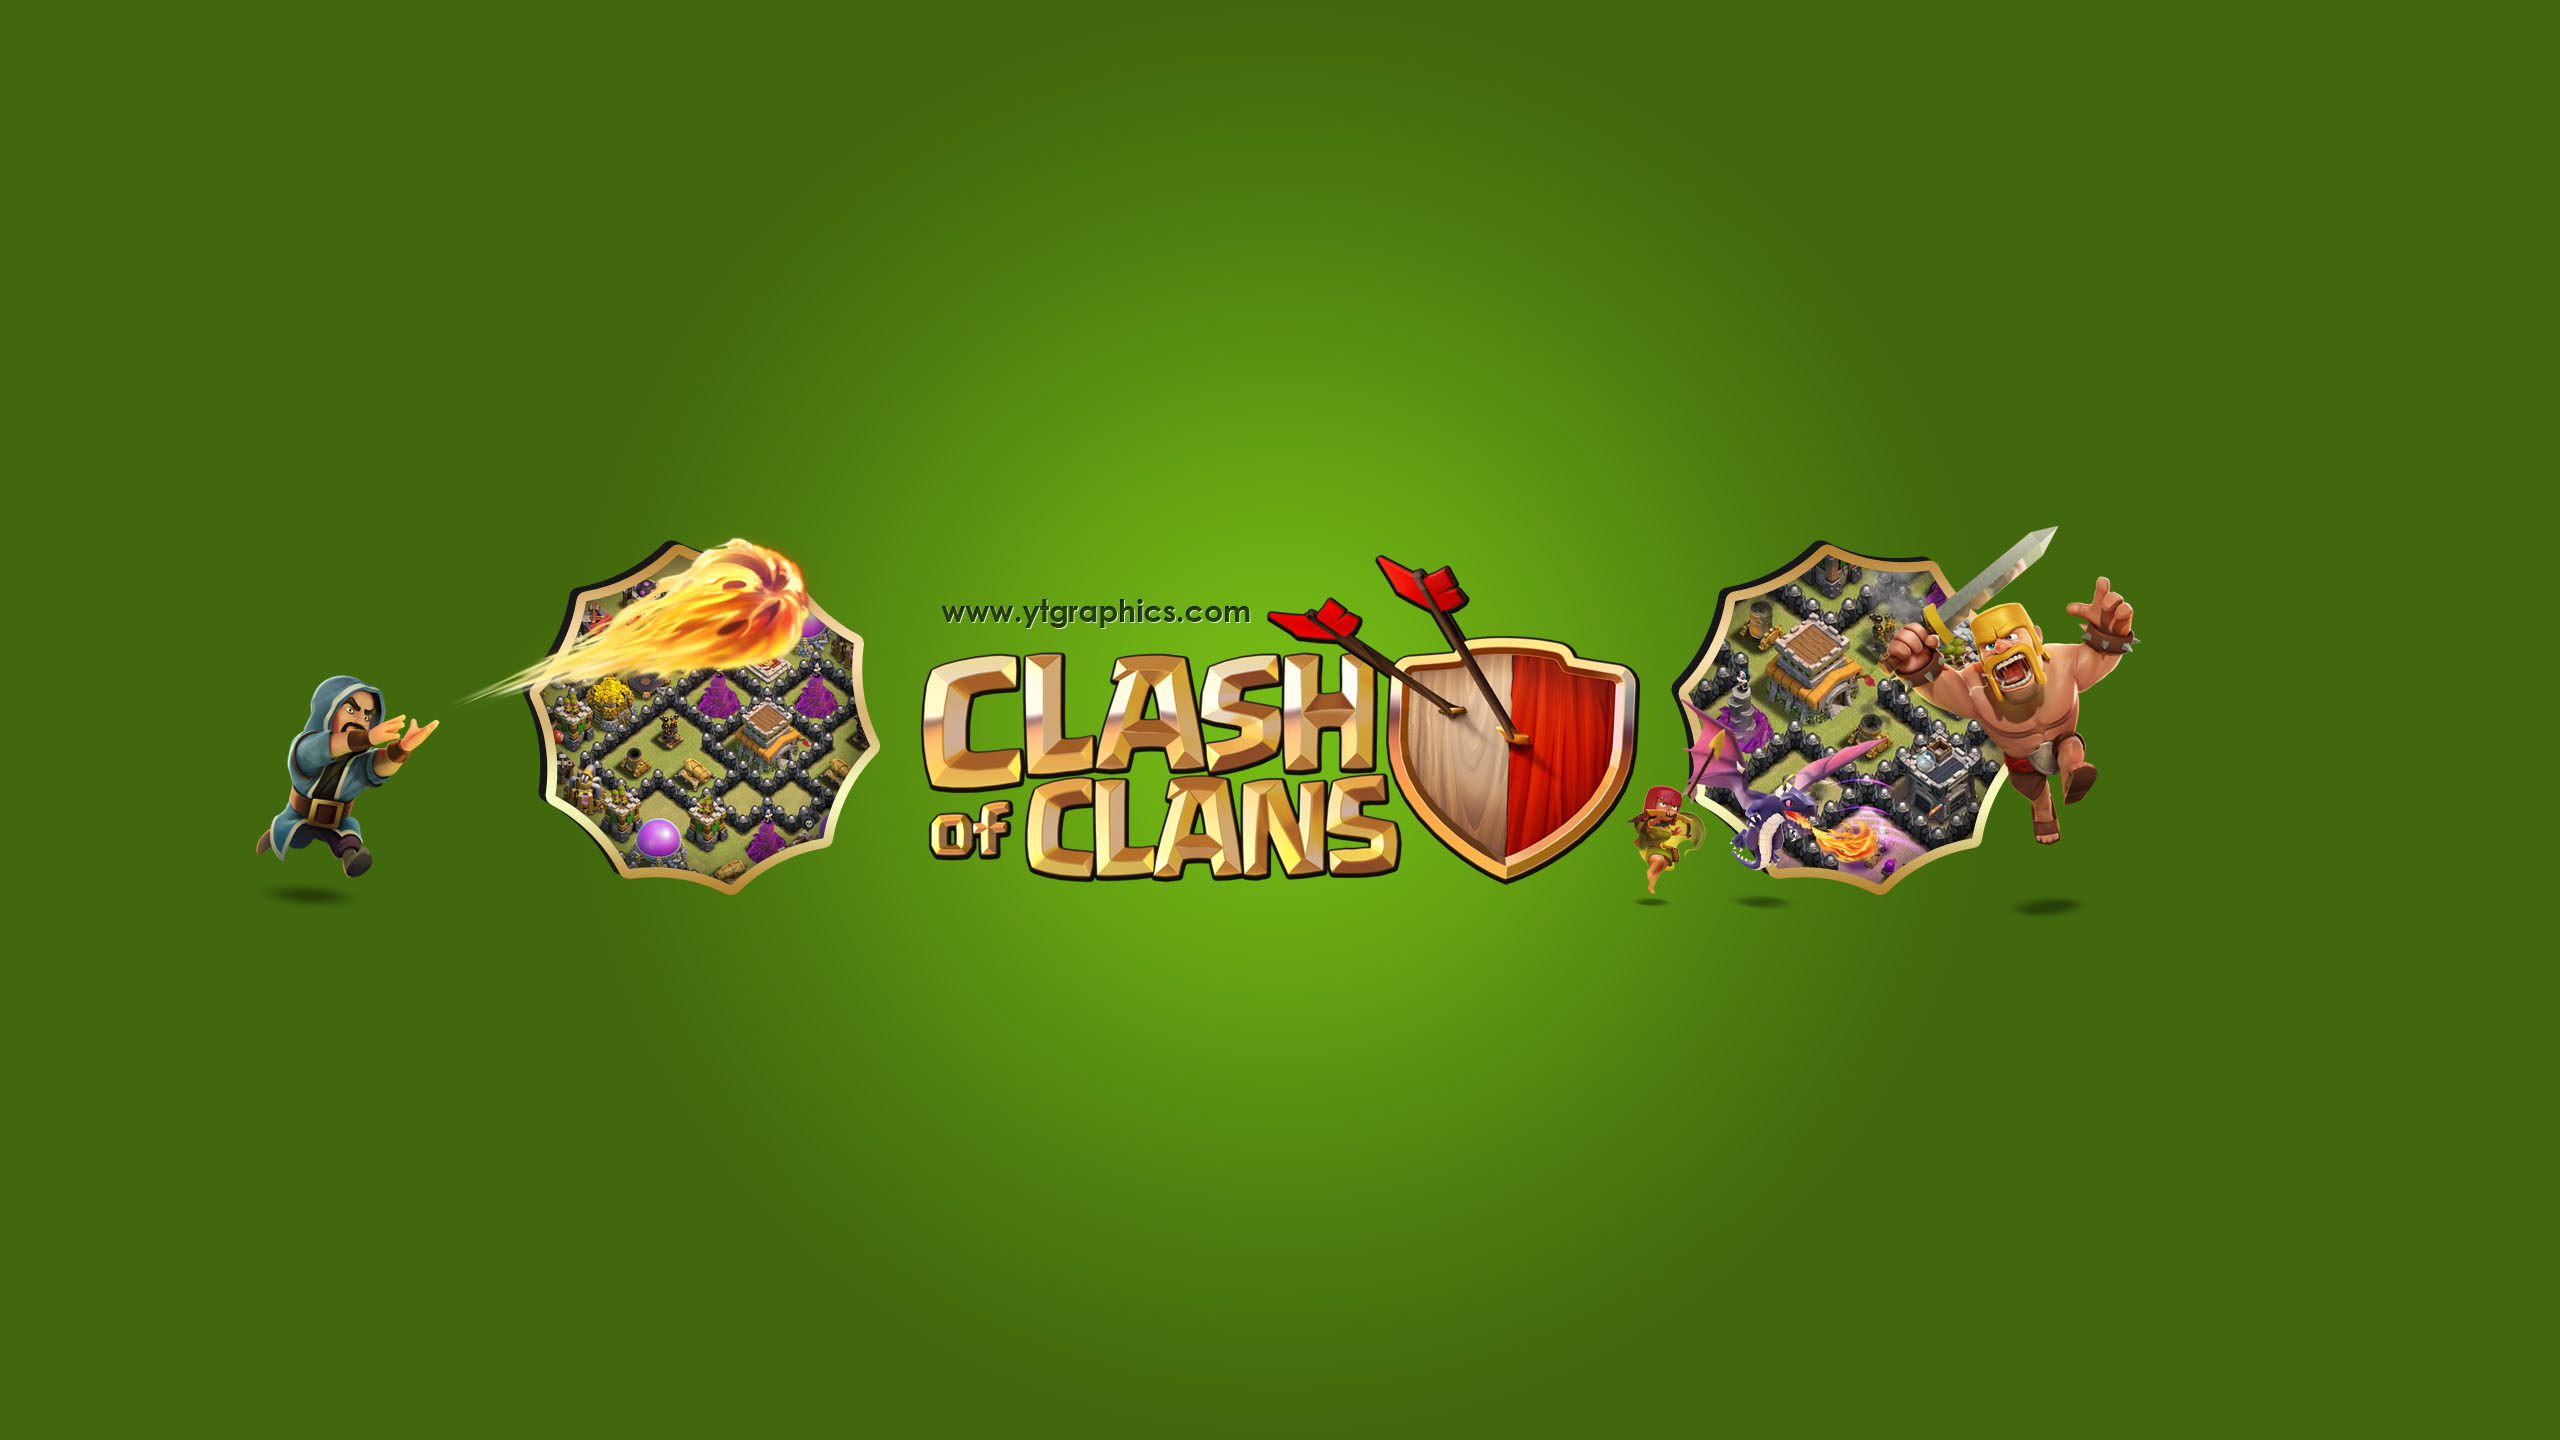 Clash of Cans YouTube Channel Art Banner